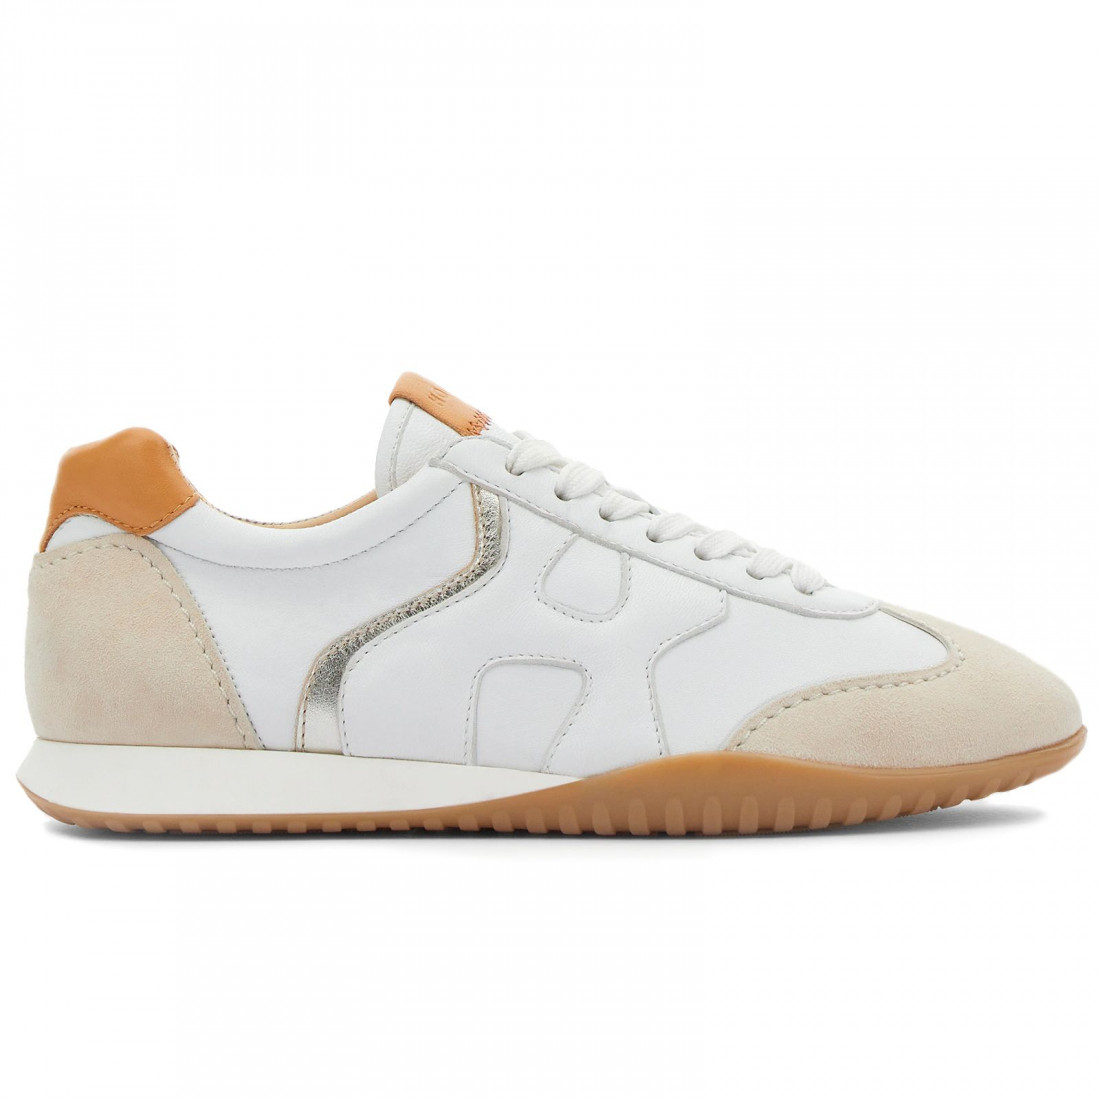 Hogan Olympia Z women's sneaker in white leather and beige suede